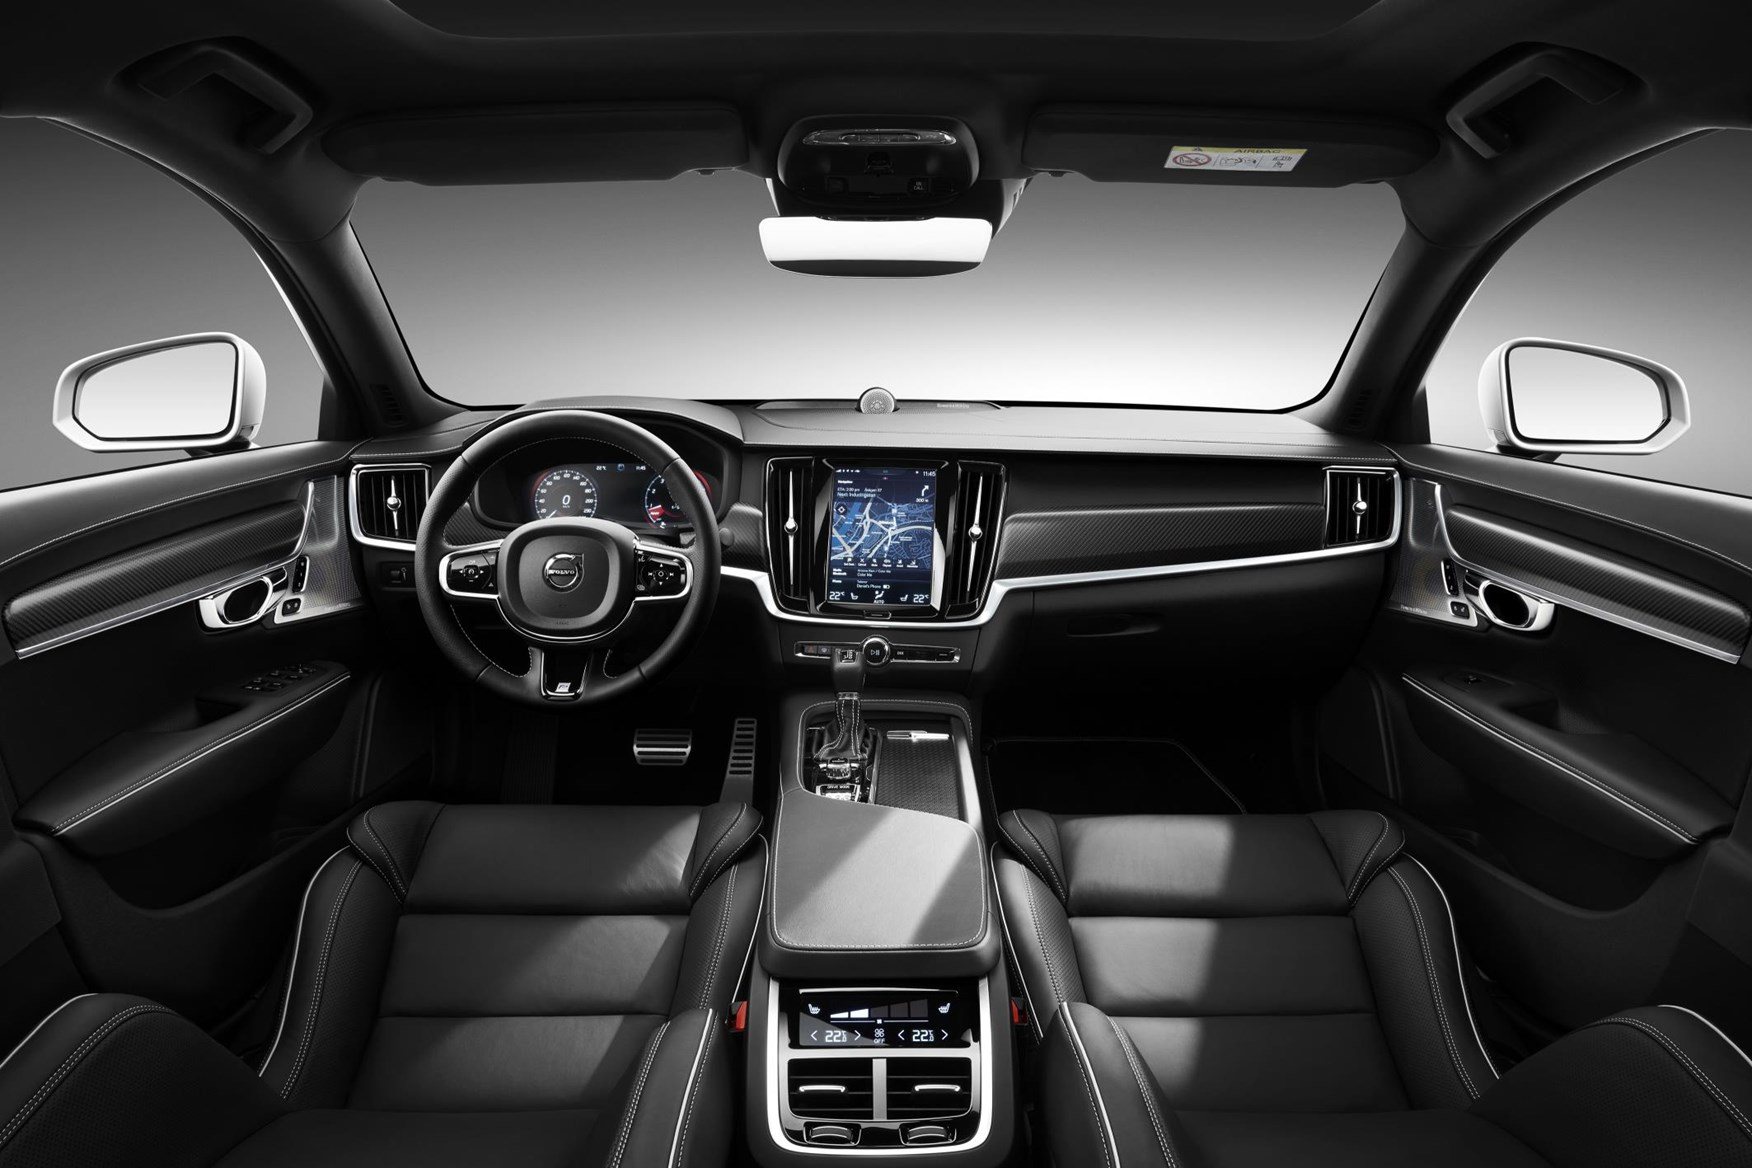 swedish for sporty volvo s90 and v90 r design 2016 execs unveiled by car magazine. Black Bedroom Furniture Sets. Home Design Ideas